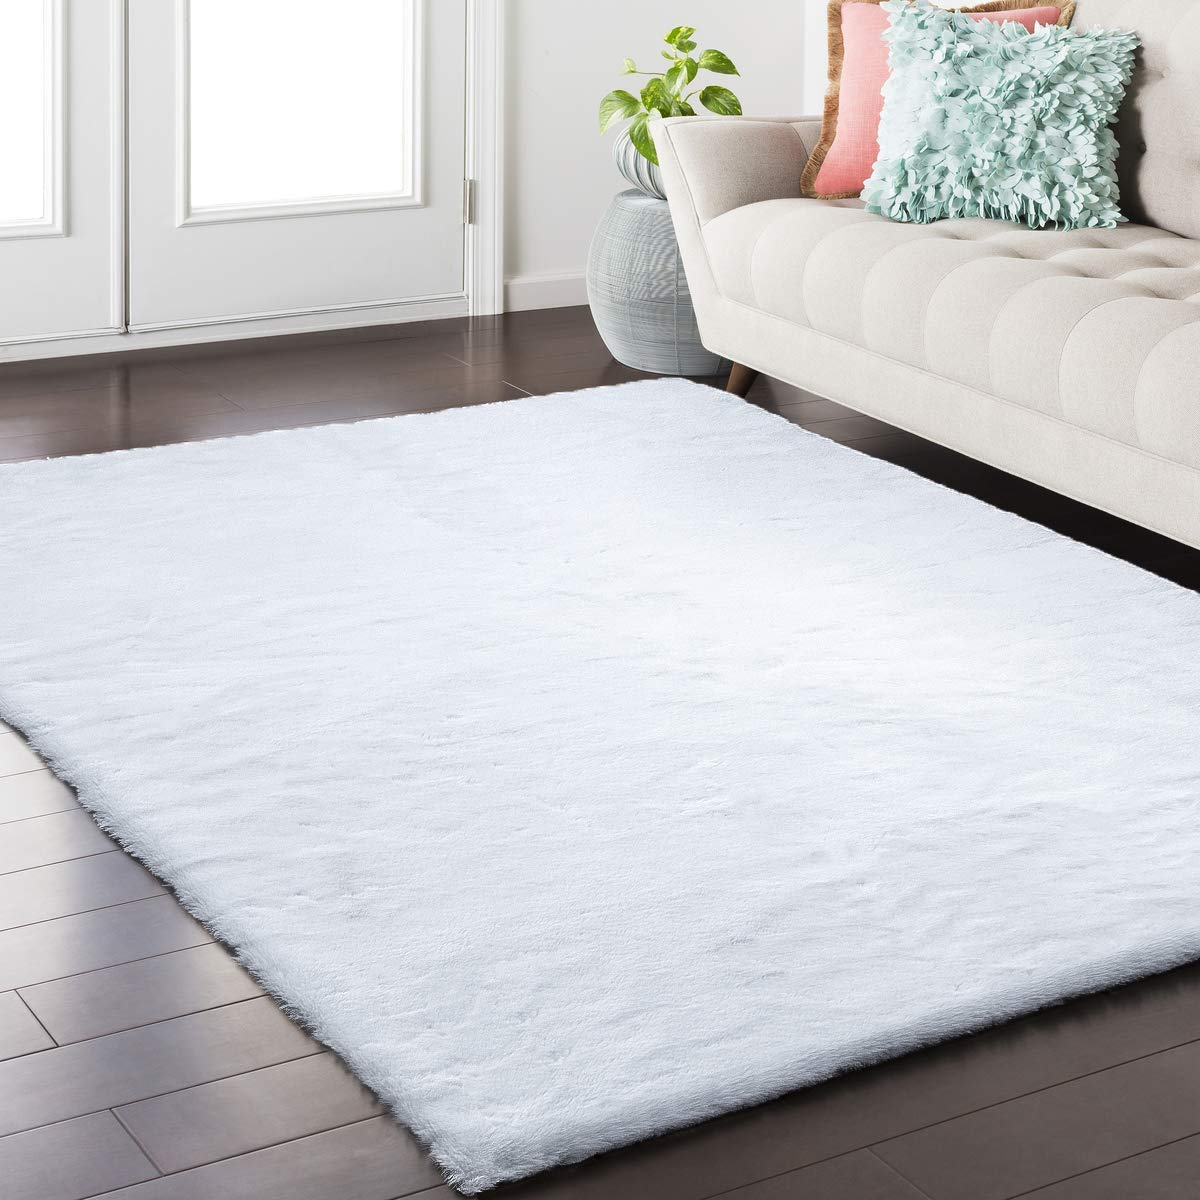 Softlife Fluffy Faux Fur Rug 3 x 5 Soft Area Rugs for Bedroom Girls Room Living Room Home Decor Floor Carpets, White Rectangle